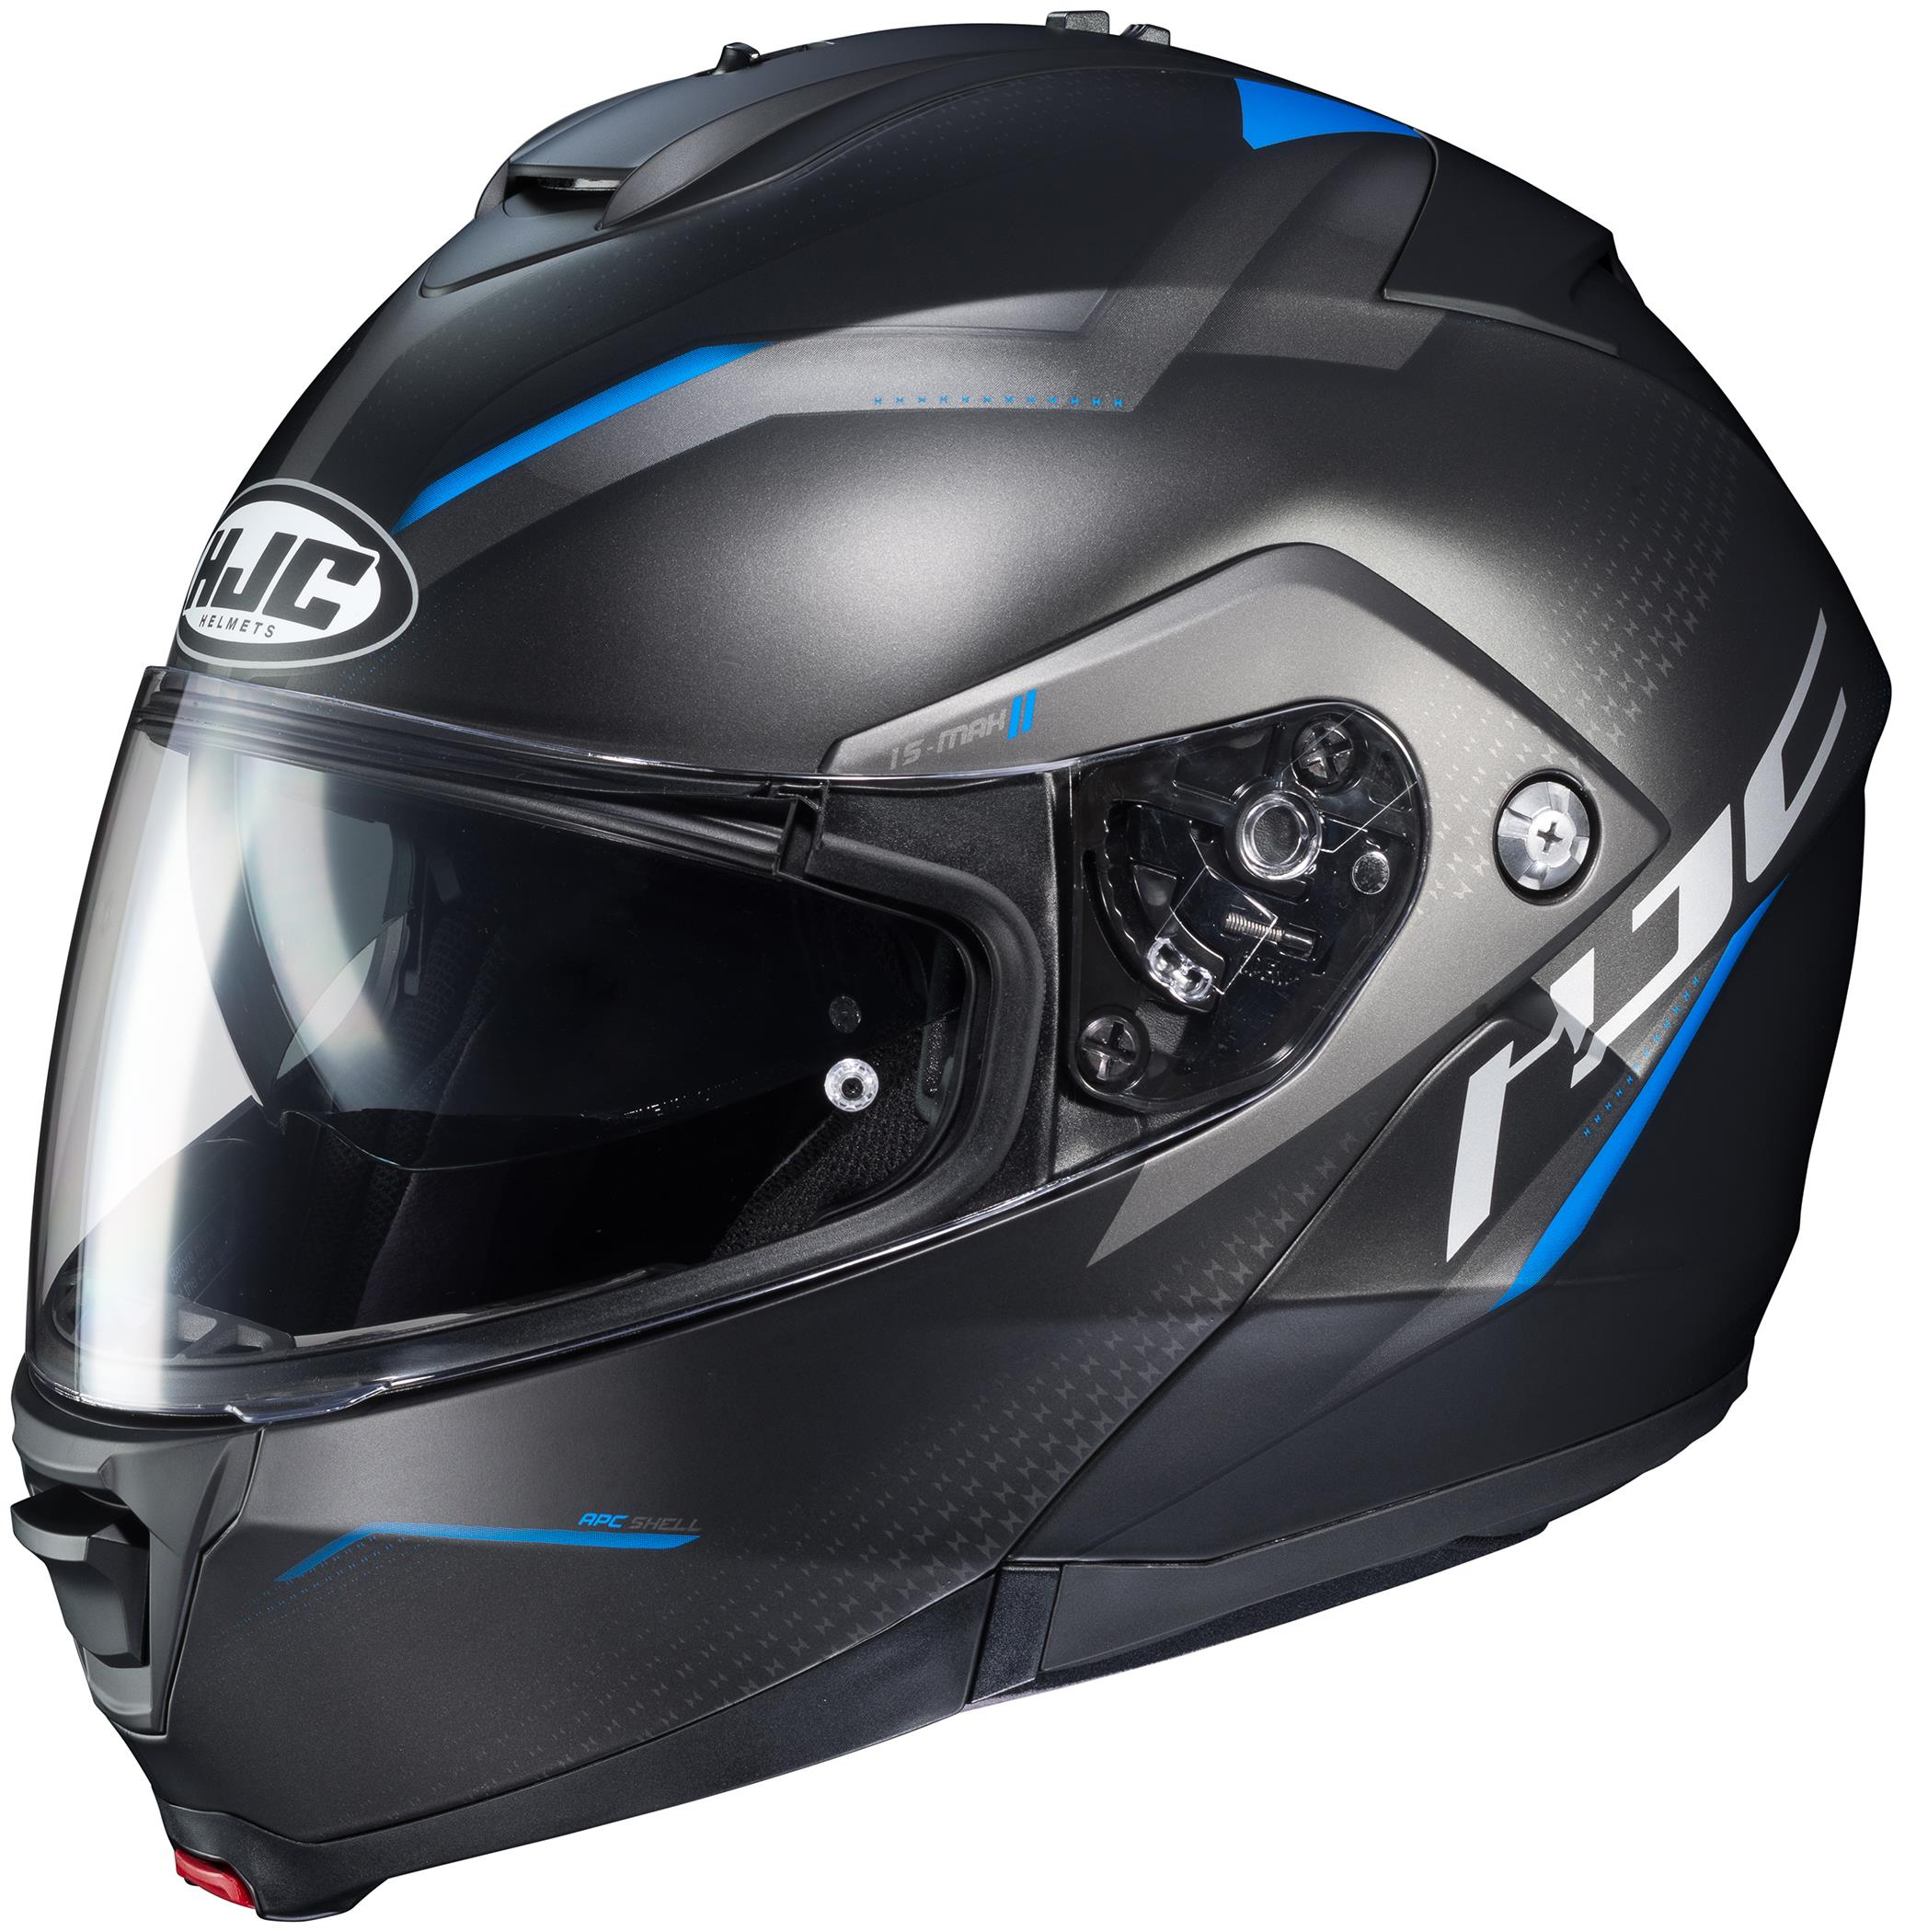 About Helmet Warehouse. There are total 50 active Helmet Warehouse promo codes and deals listed below, including 1 Coupon codes and 49 deals. The Helmet Warehouse vouchers are updated on November 10,